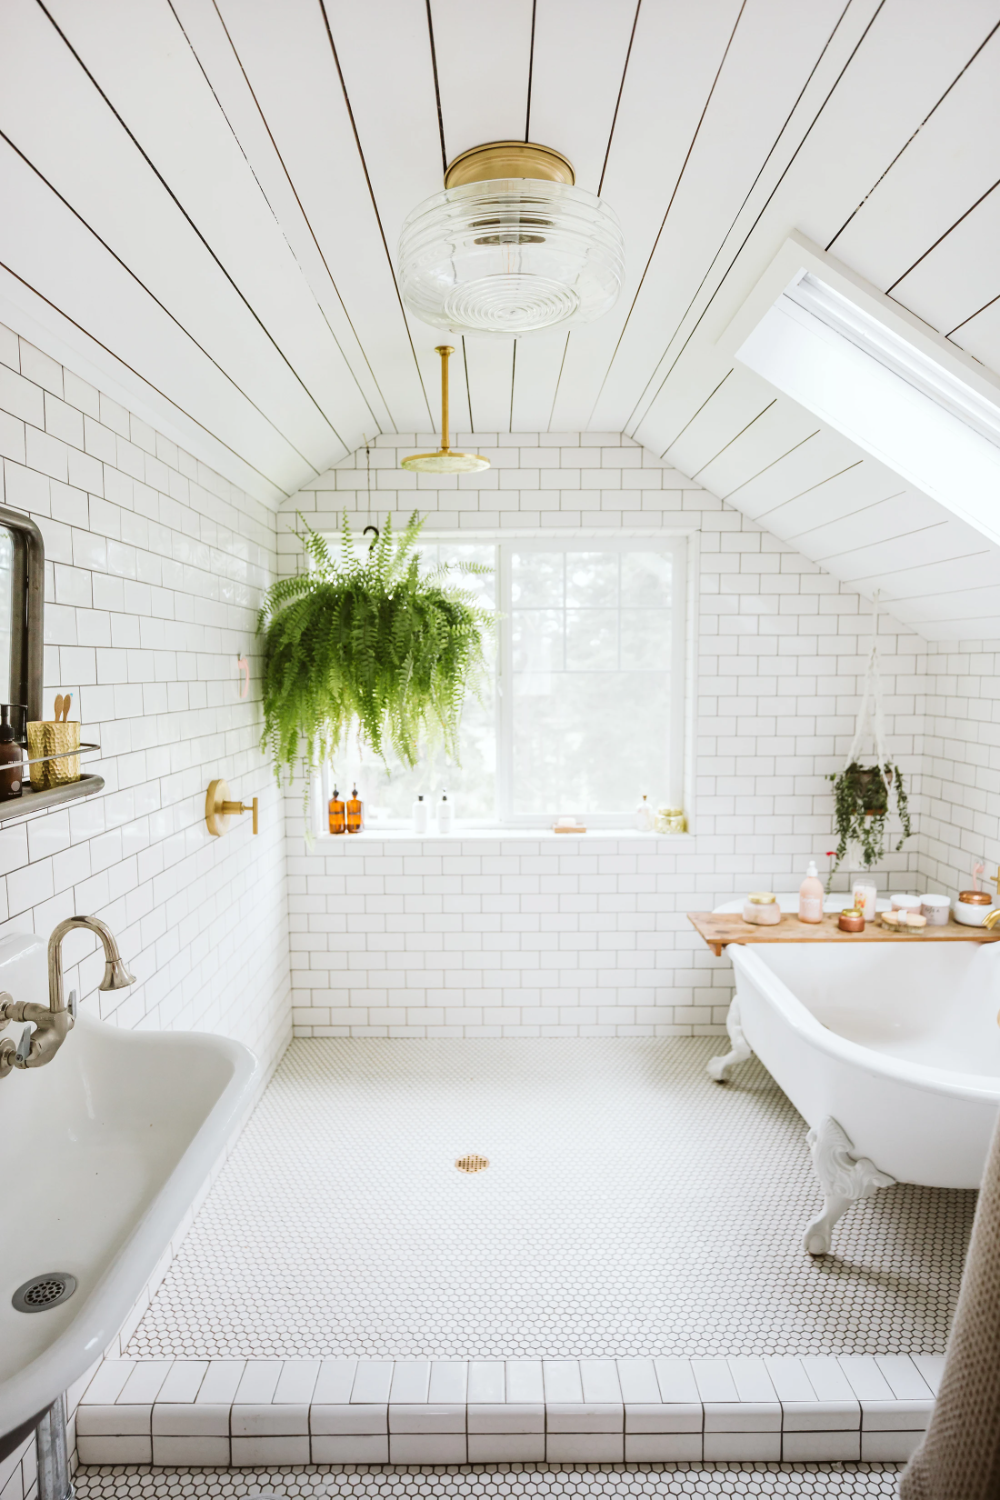 Attic bathroom with subway and penny tile plus white clawfoot tub.